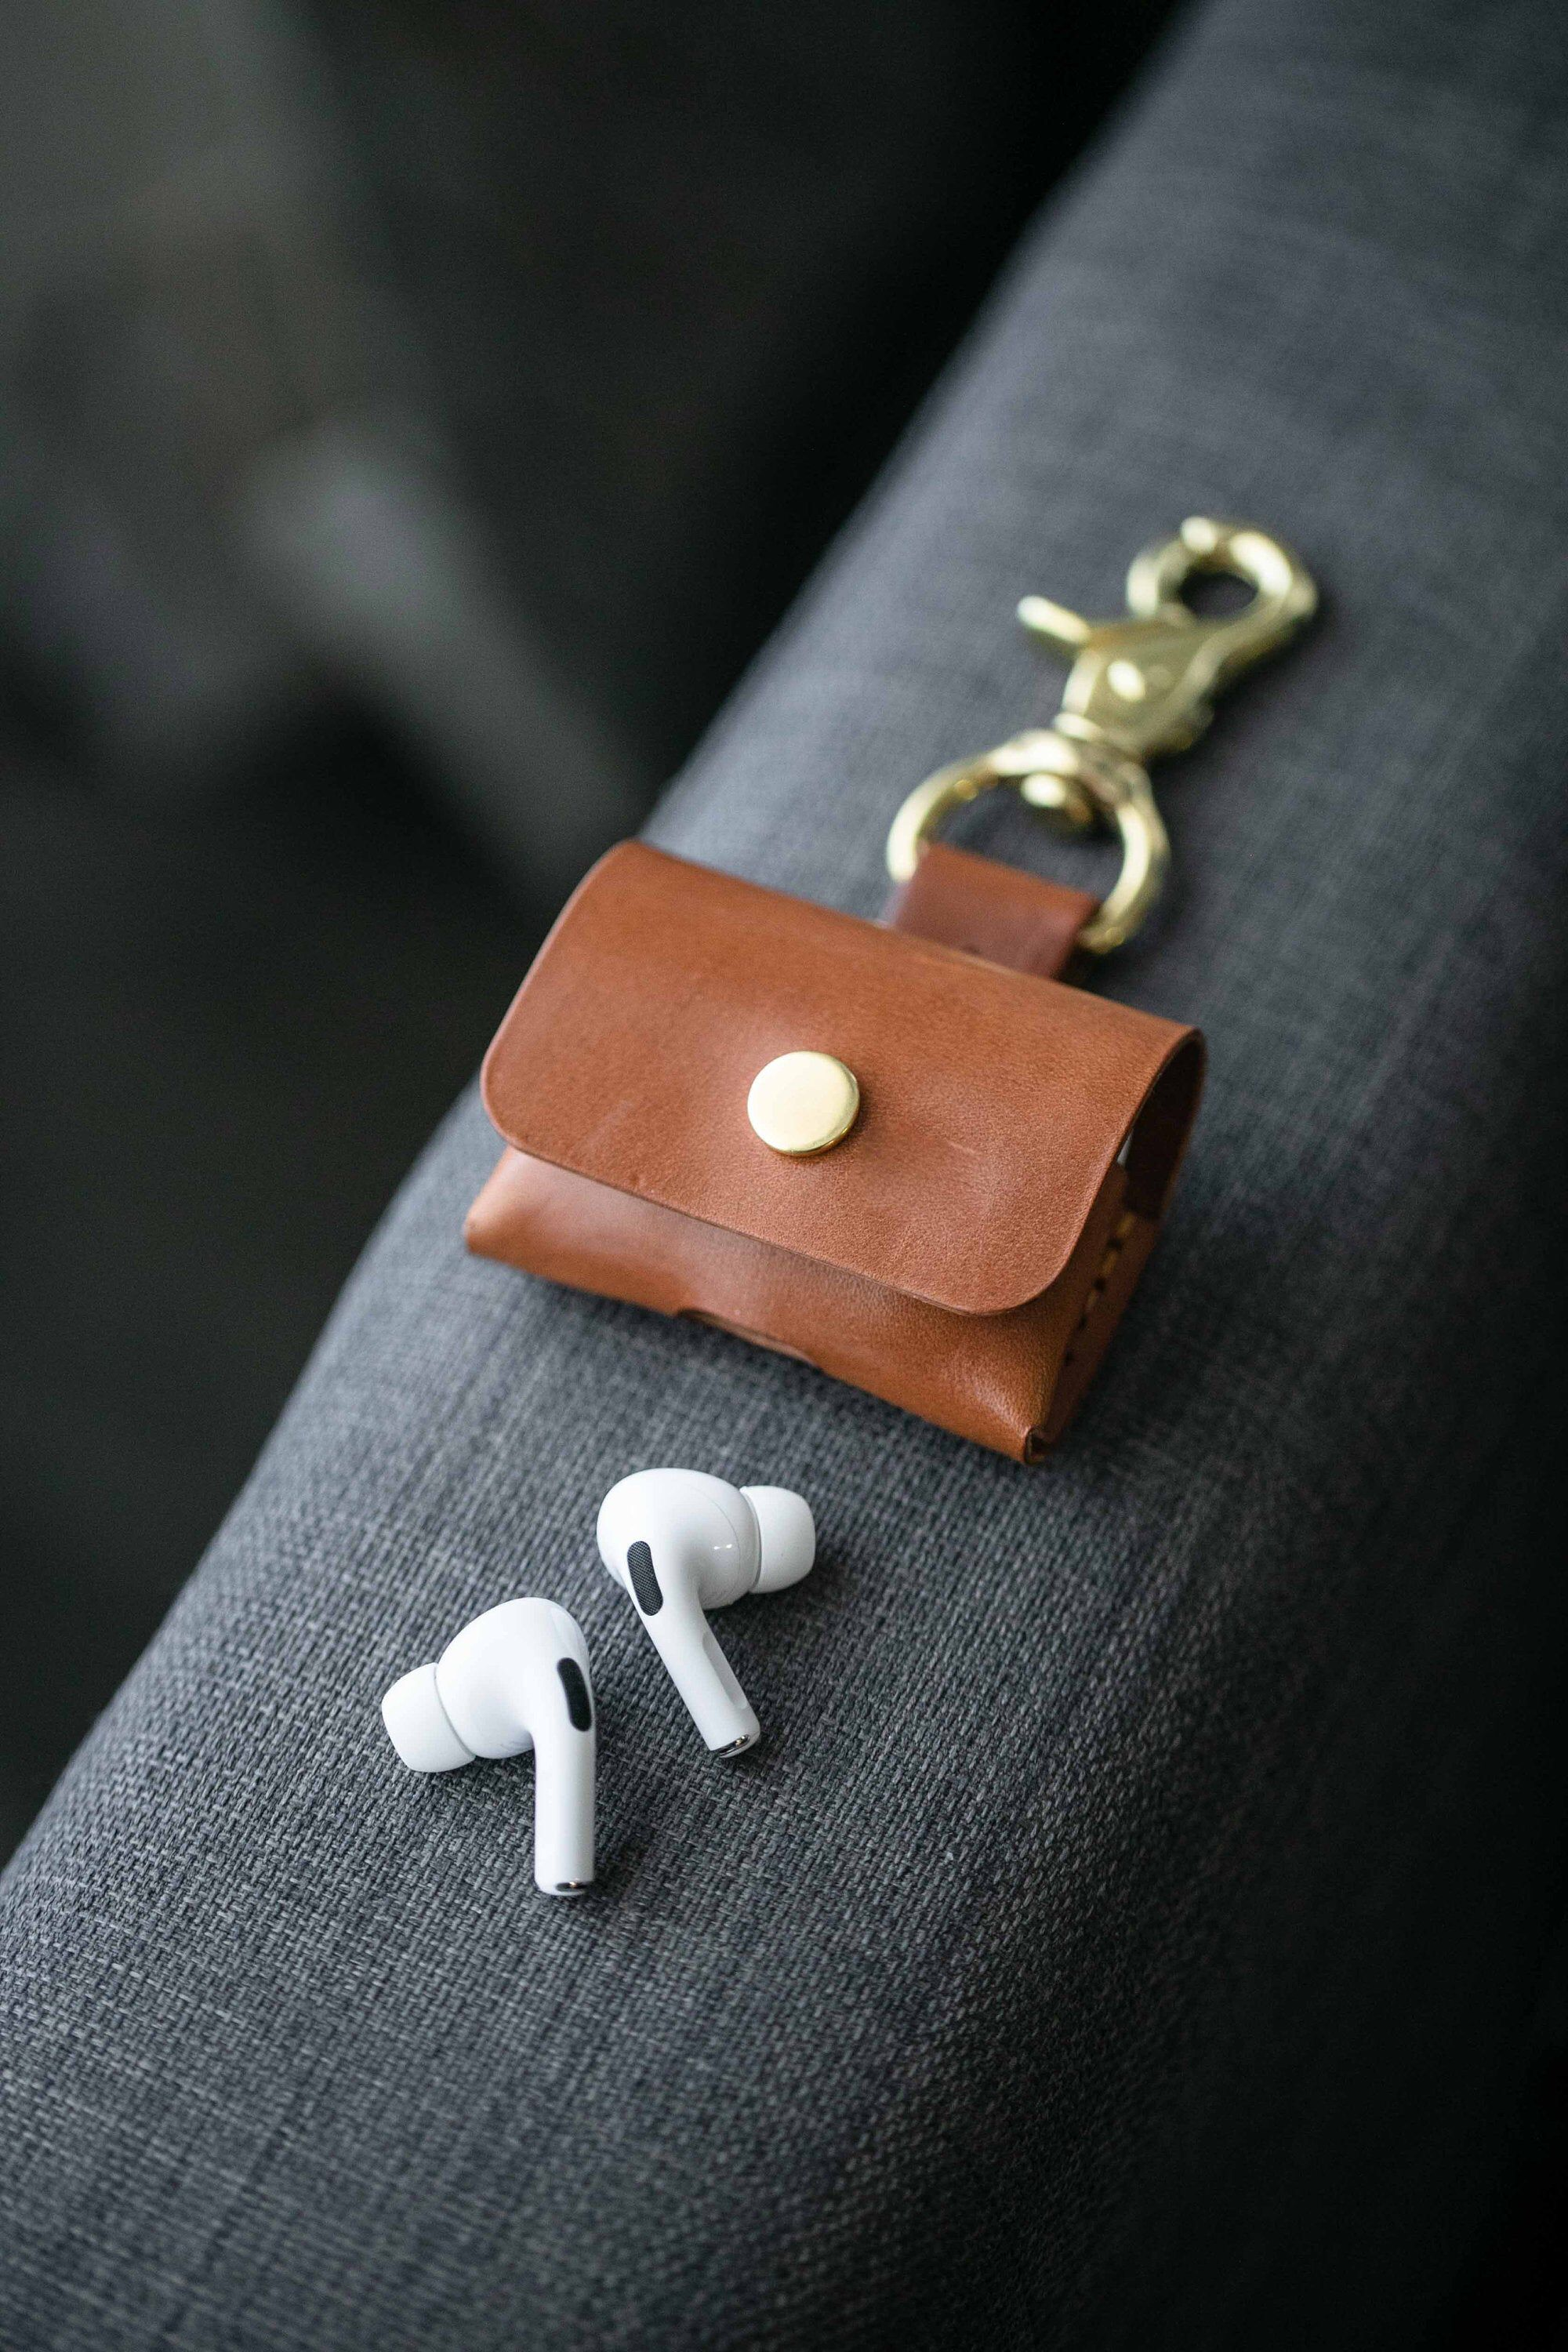 Airpod Pro Case For Apple Airpods Pro Airpods Pro Leather Etsy In 2020 Airpod Pro Airpods Pro Leather Case